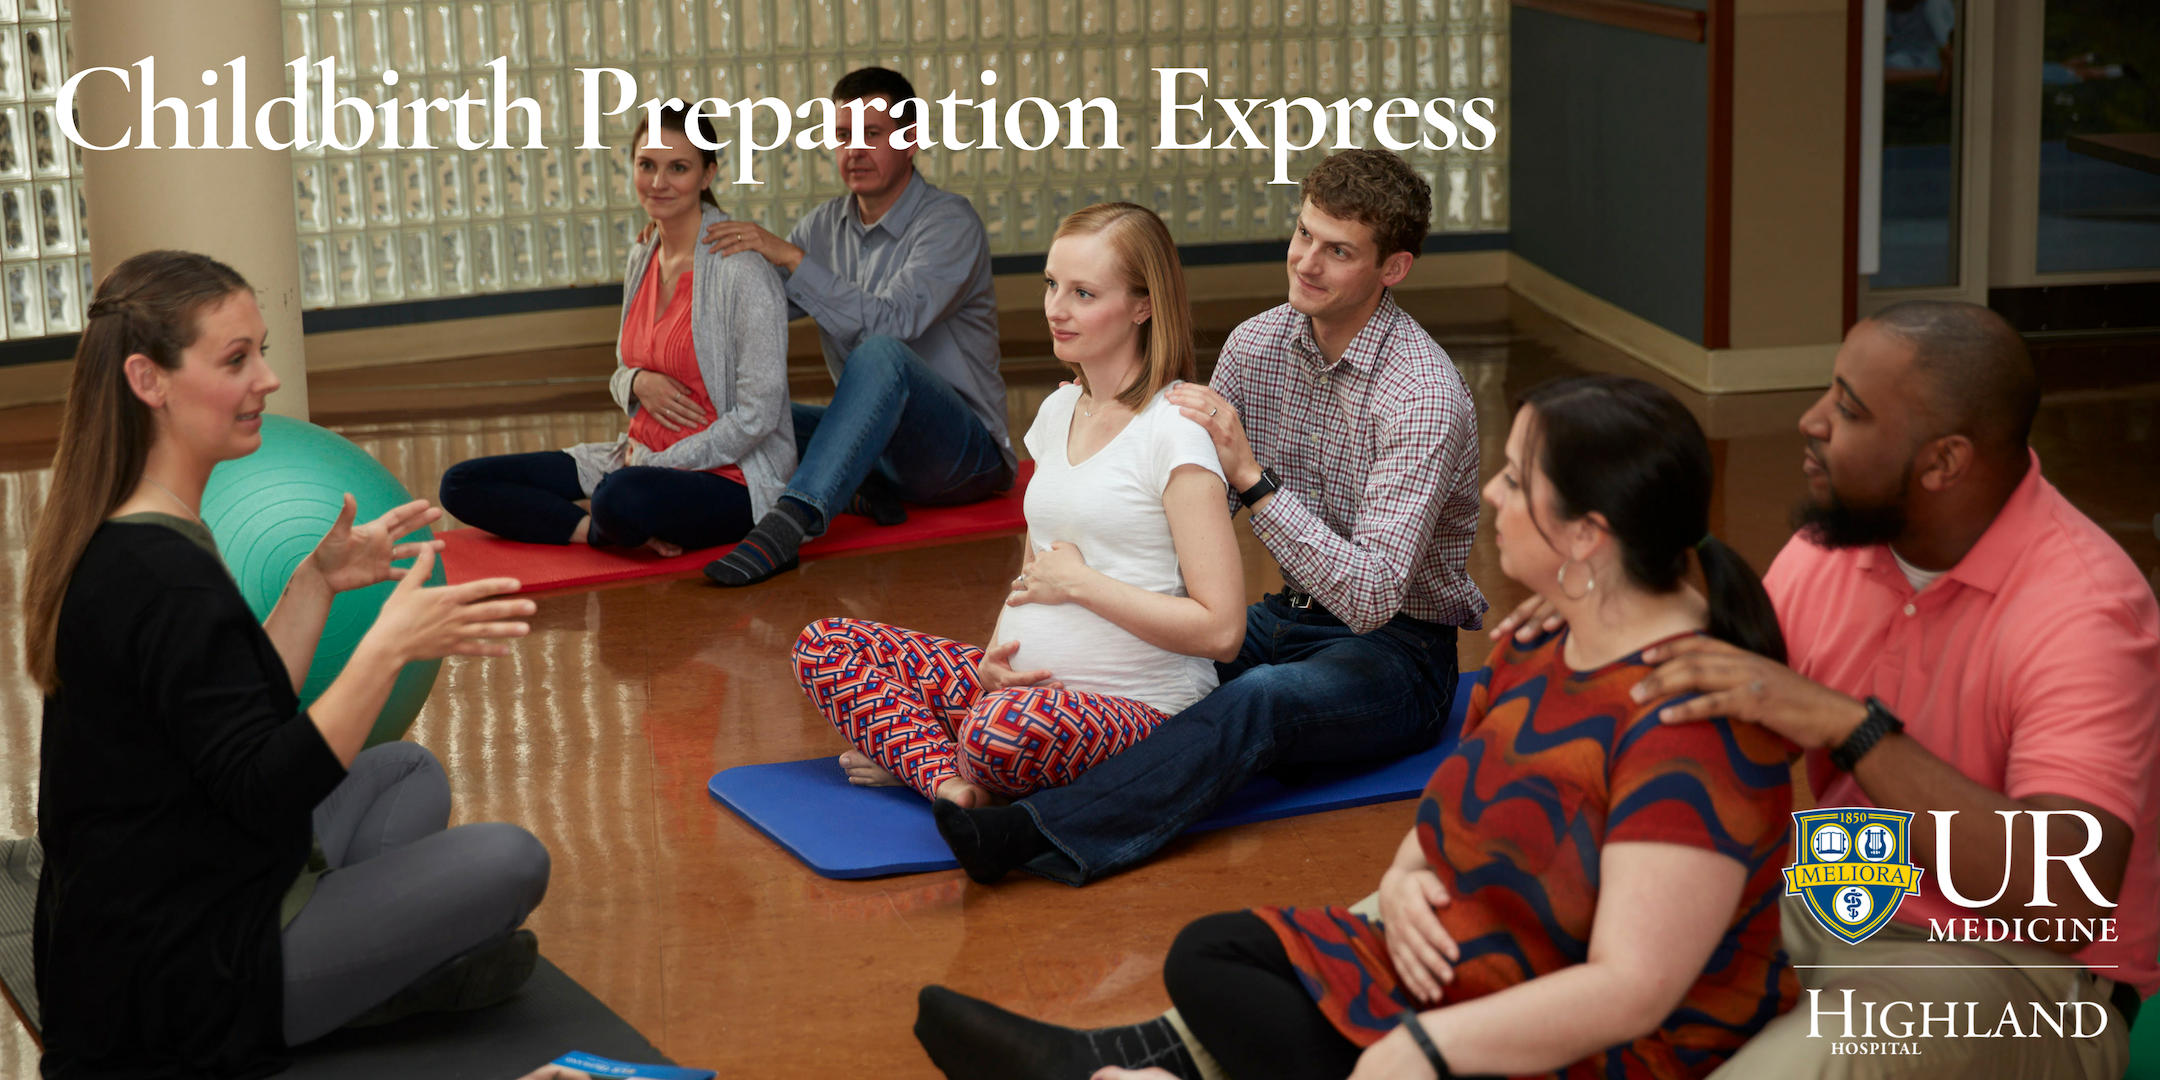 Childbirth Preparation Express, Saturday 6/6/20